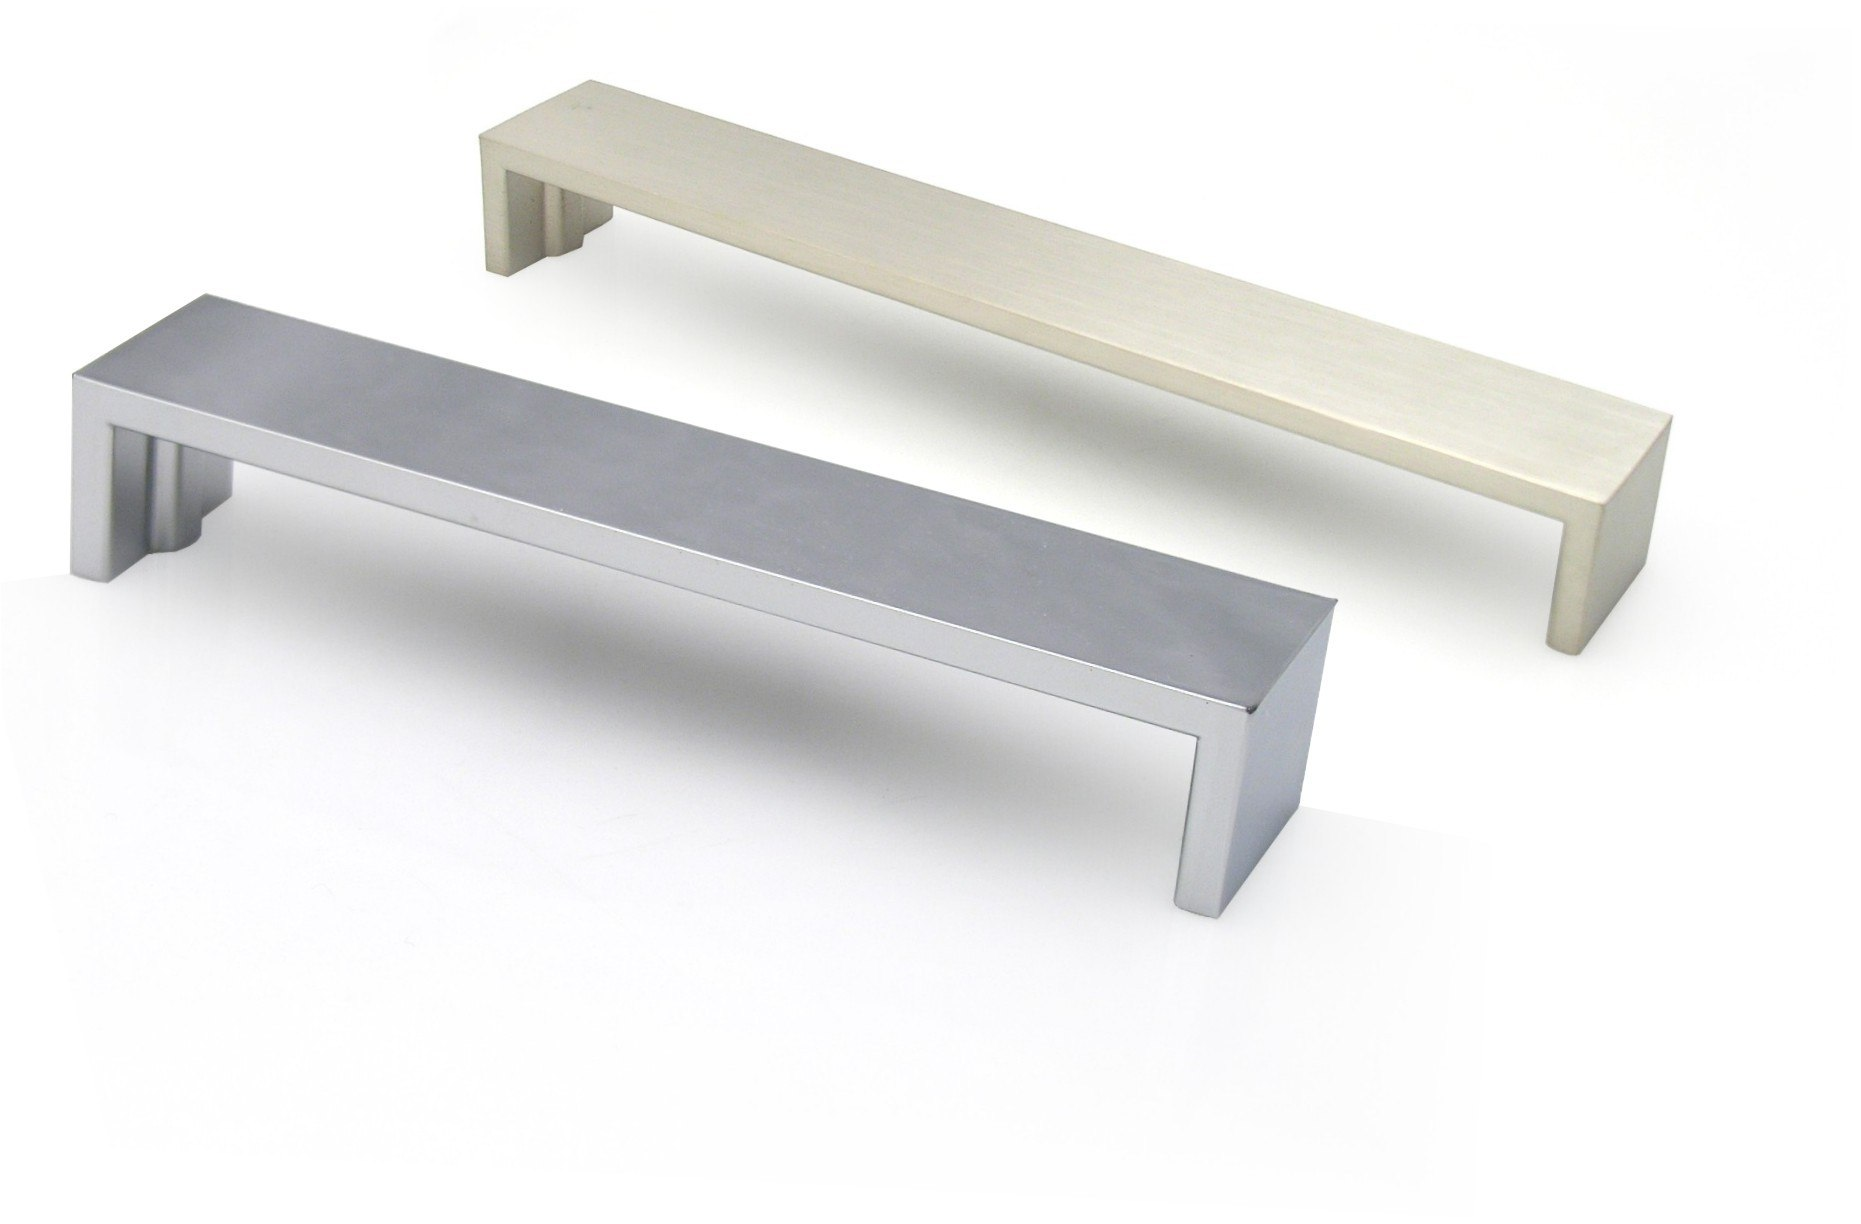 TOPEX Z01442240067 BROAD FLAT BENCH PULL 8 7/8 INCHES (224MM) BRUSHED NICKEL